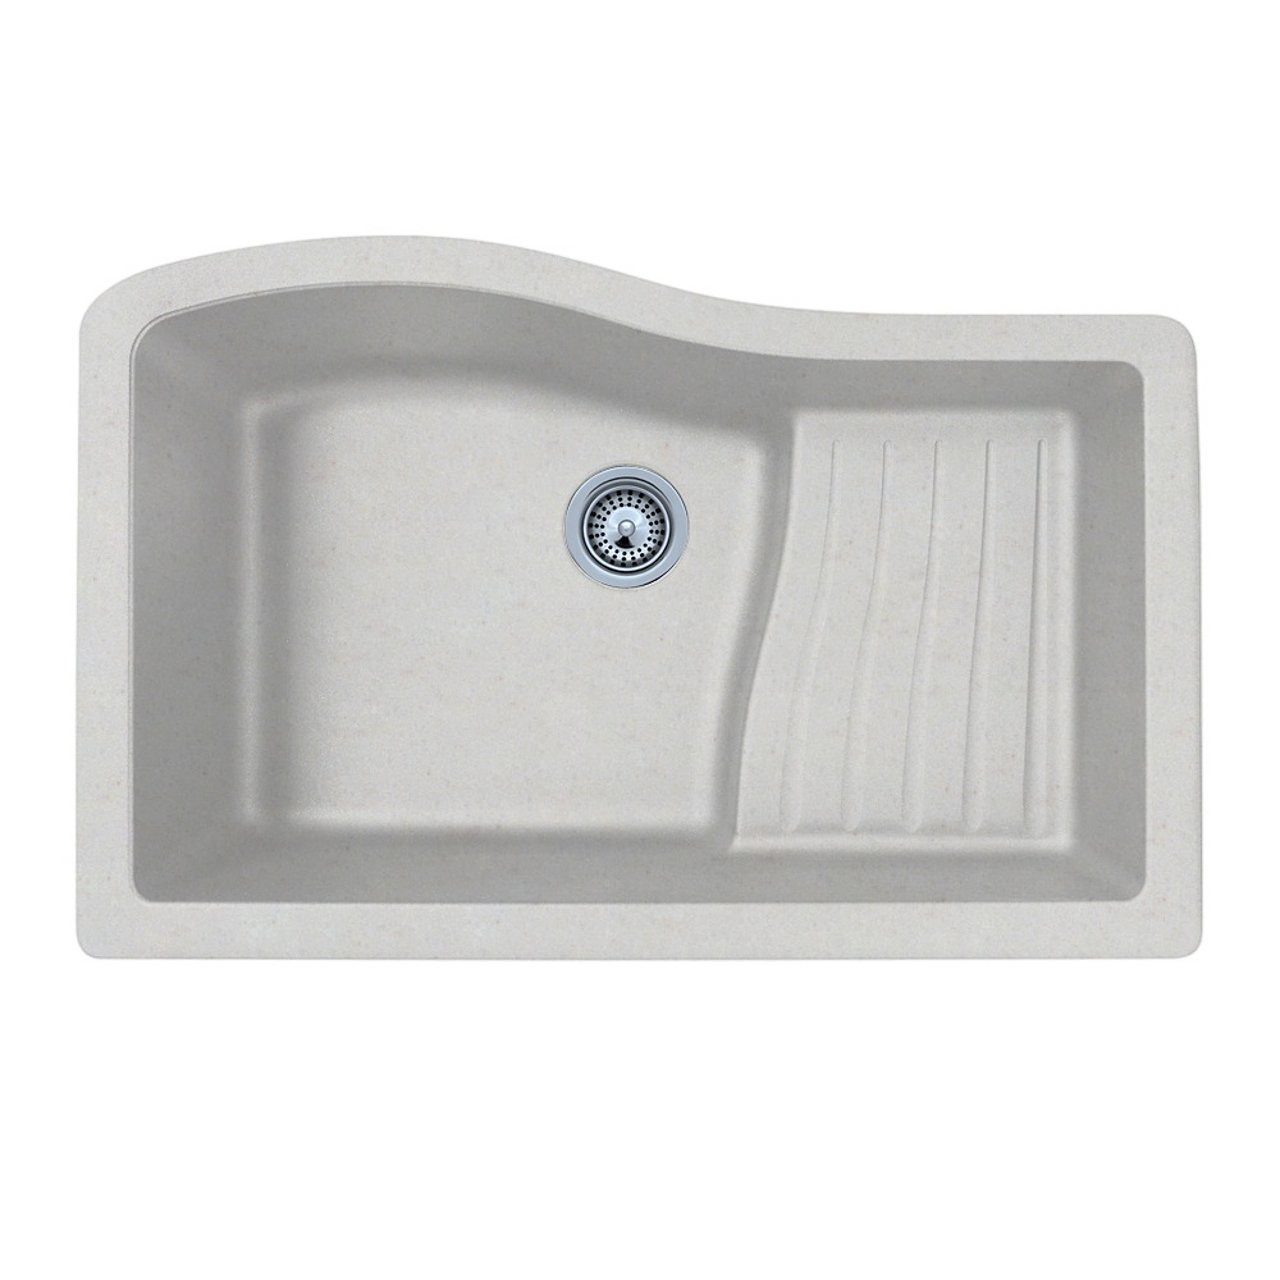 Swanstone Granite Kitchen Sinks Swanstone Quad 3322076 33 Inch By 22 Inch Undermount Ascend Bowl